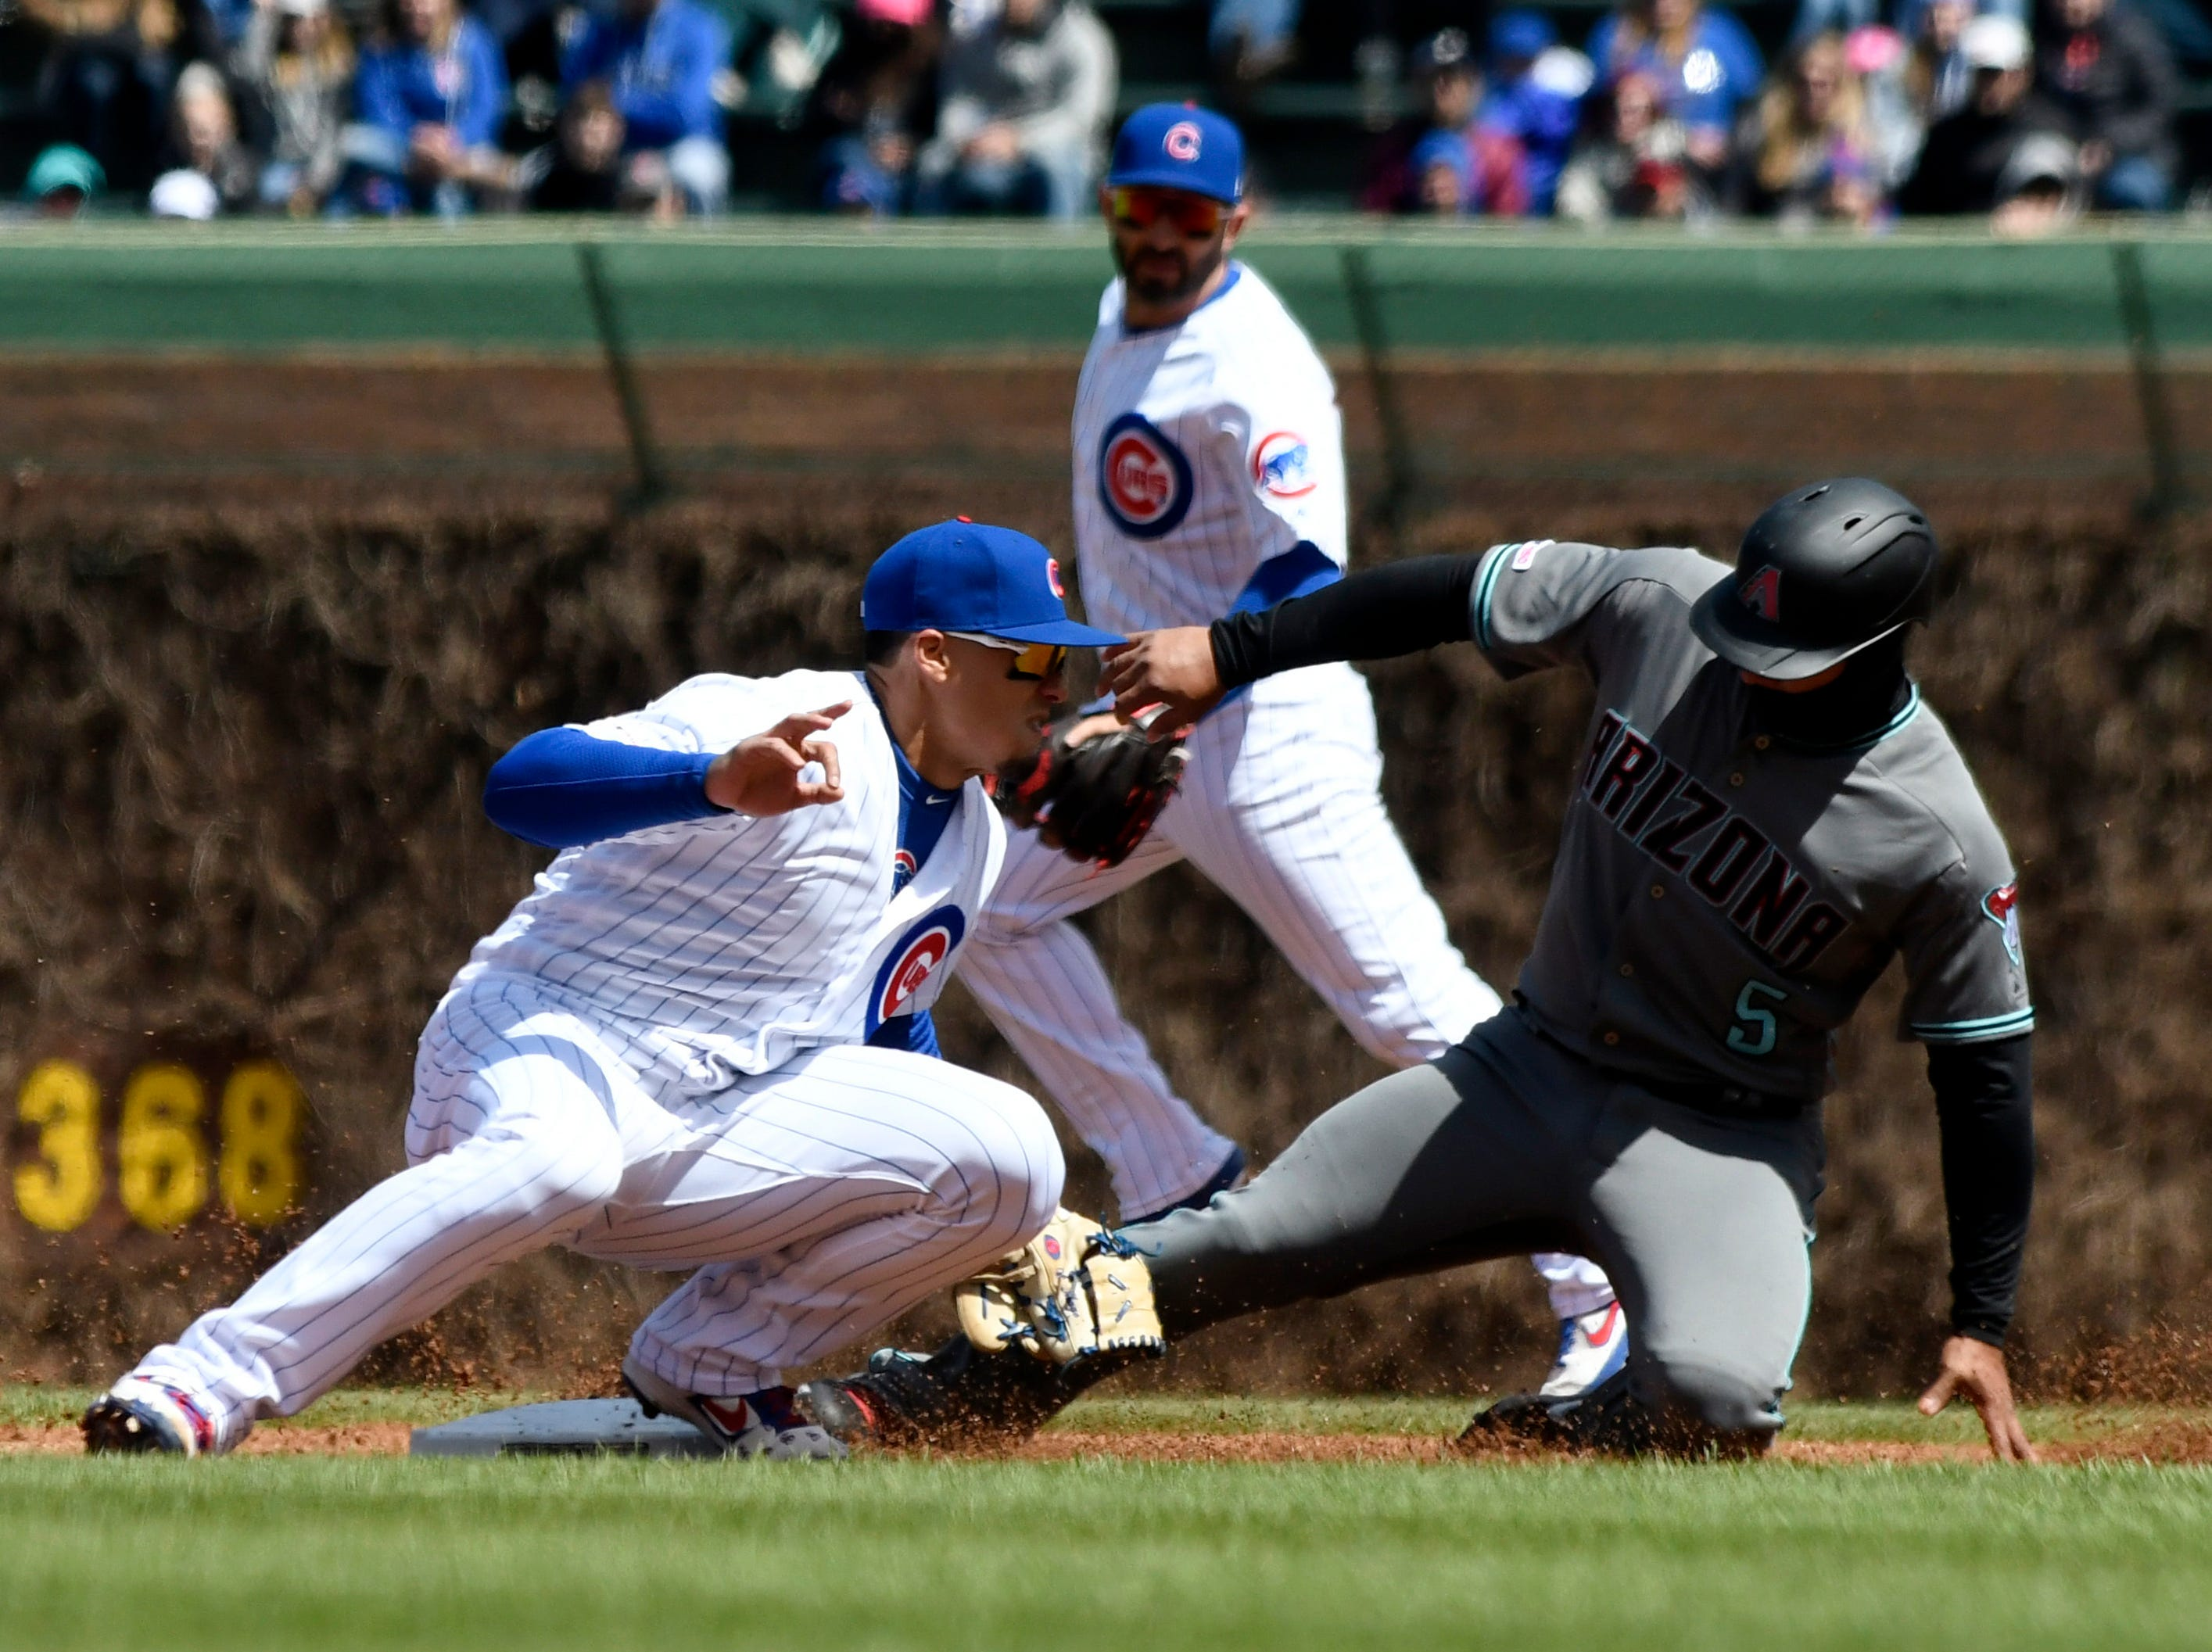 Chicago Cubs shortstop Javier Baez (9) tags out Arizona Diamondbacks' Eduardo Escobar (5) on a steal attempt at second base during the first inning of a baseball game, Friday, April 19, 2019, in Chicago. (AP Photo/David Banks)